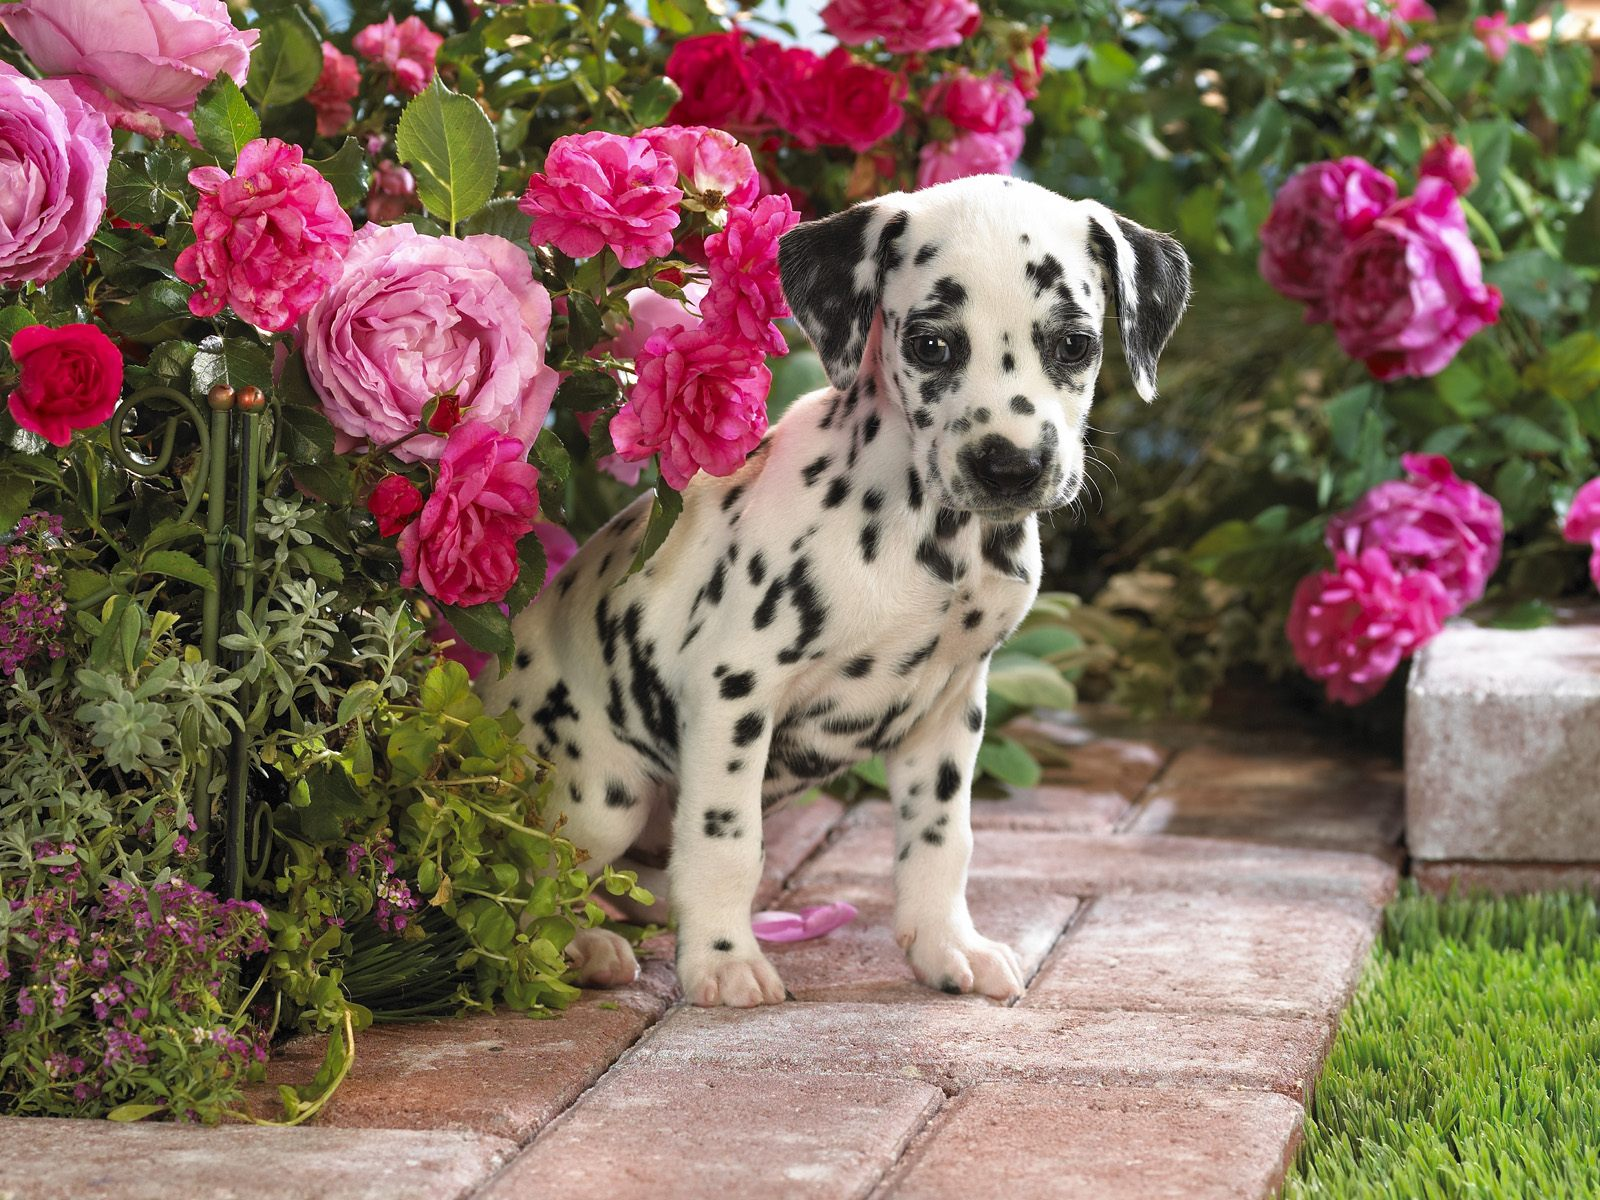 Dalmatian Puppies: Dalmatian Cute Dalmatian Puppies S Breed